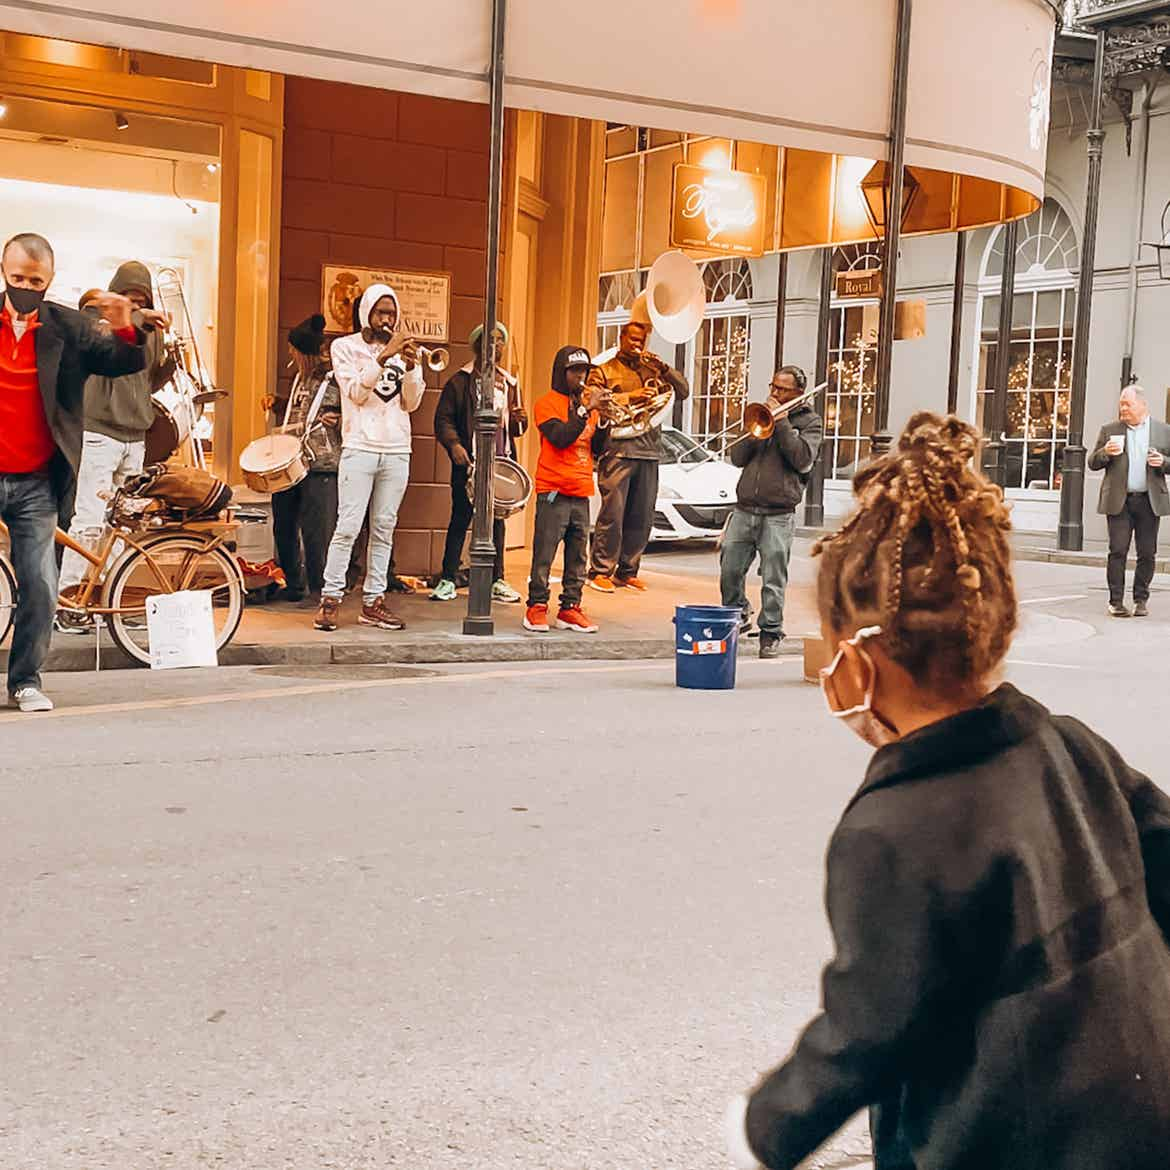 Featured Contributor, Sally Butan of @butanclan's daughter wears a mask and jacket while dancing to a live brass band on Bourbon St. in New Orleans, Louisiana.